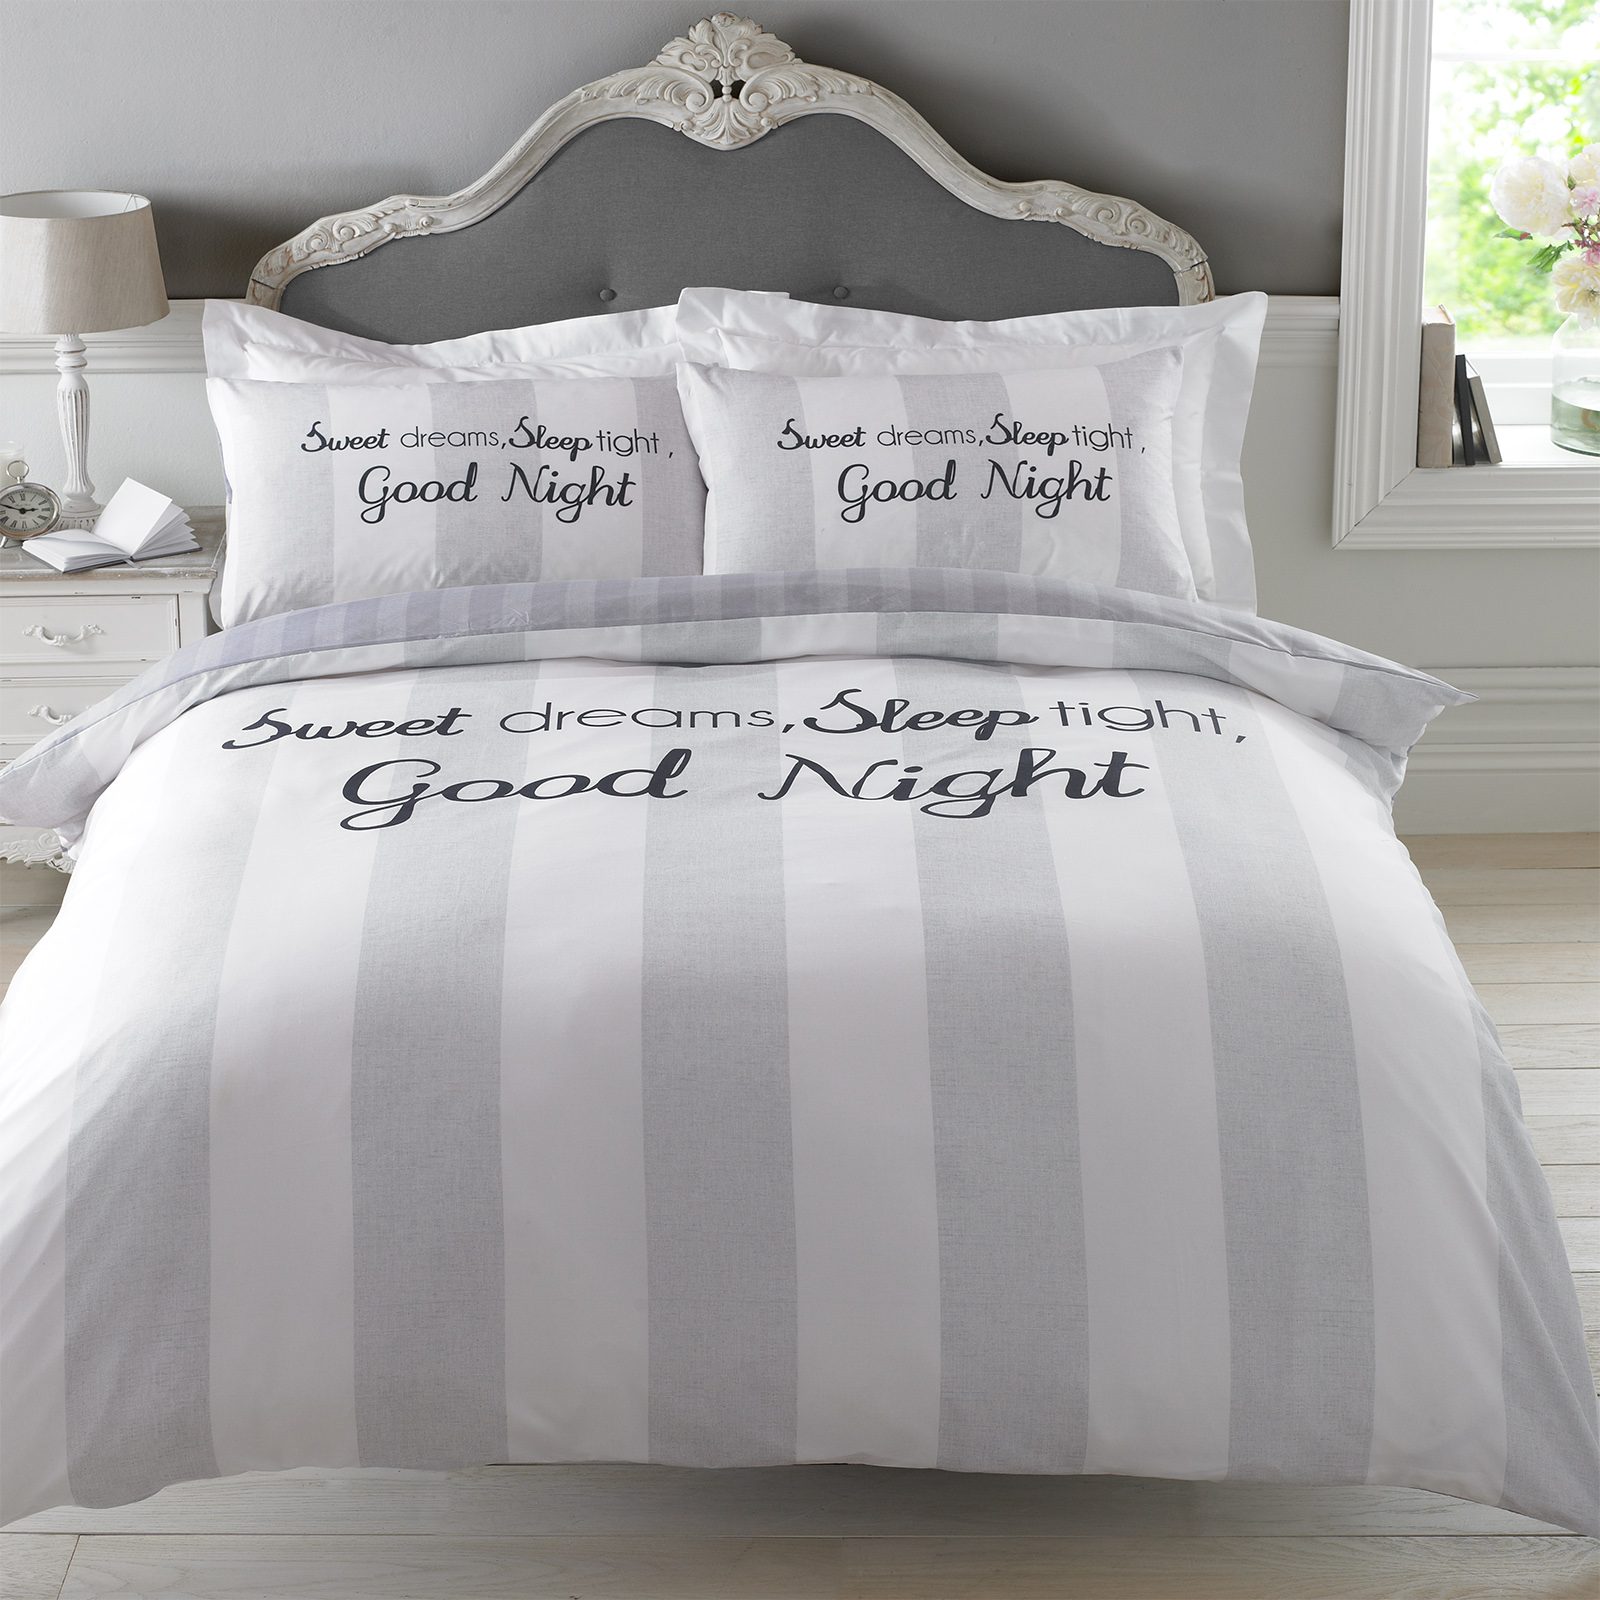 New Duvet Cover With Pillowcase Bedding Set Sweet Dreams